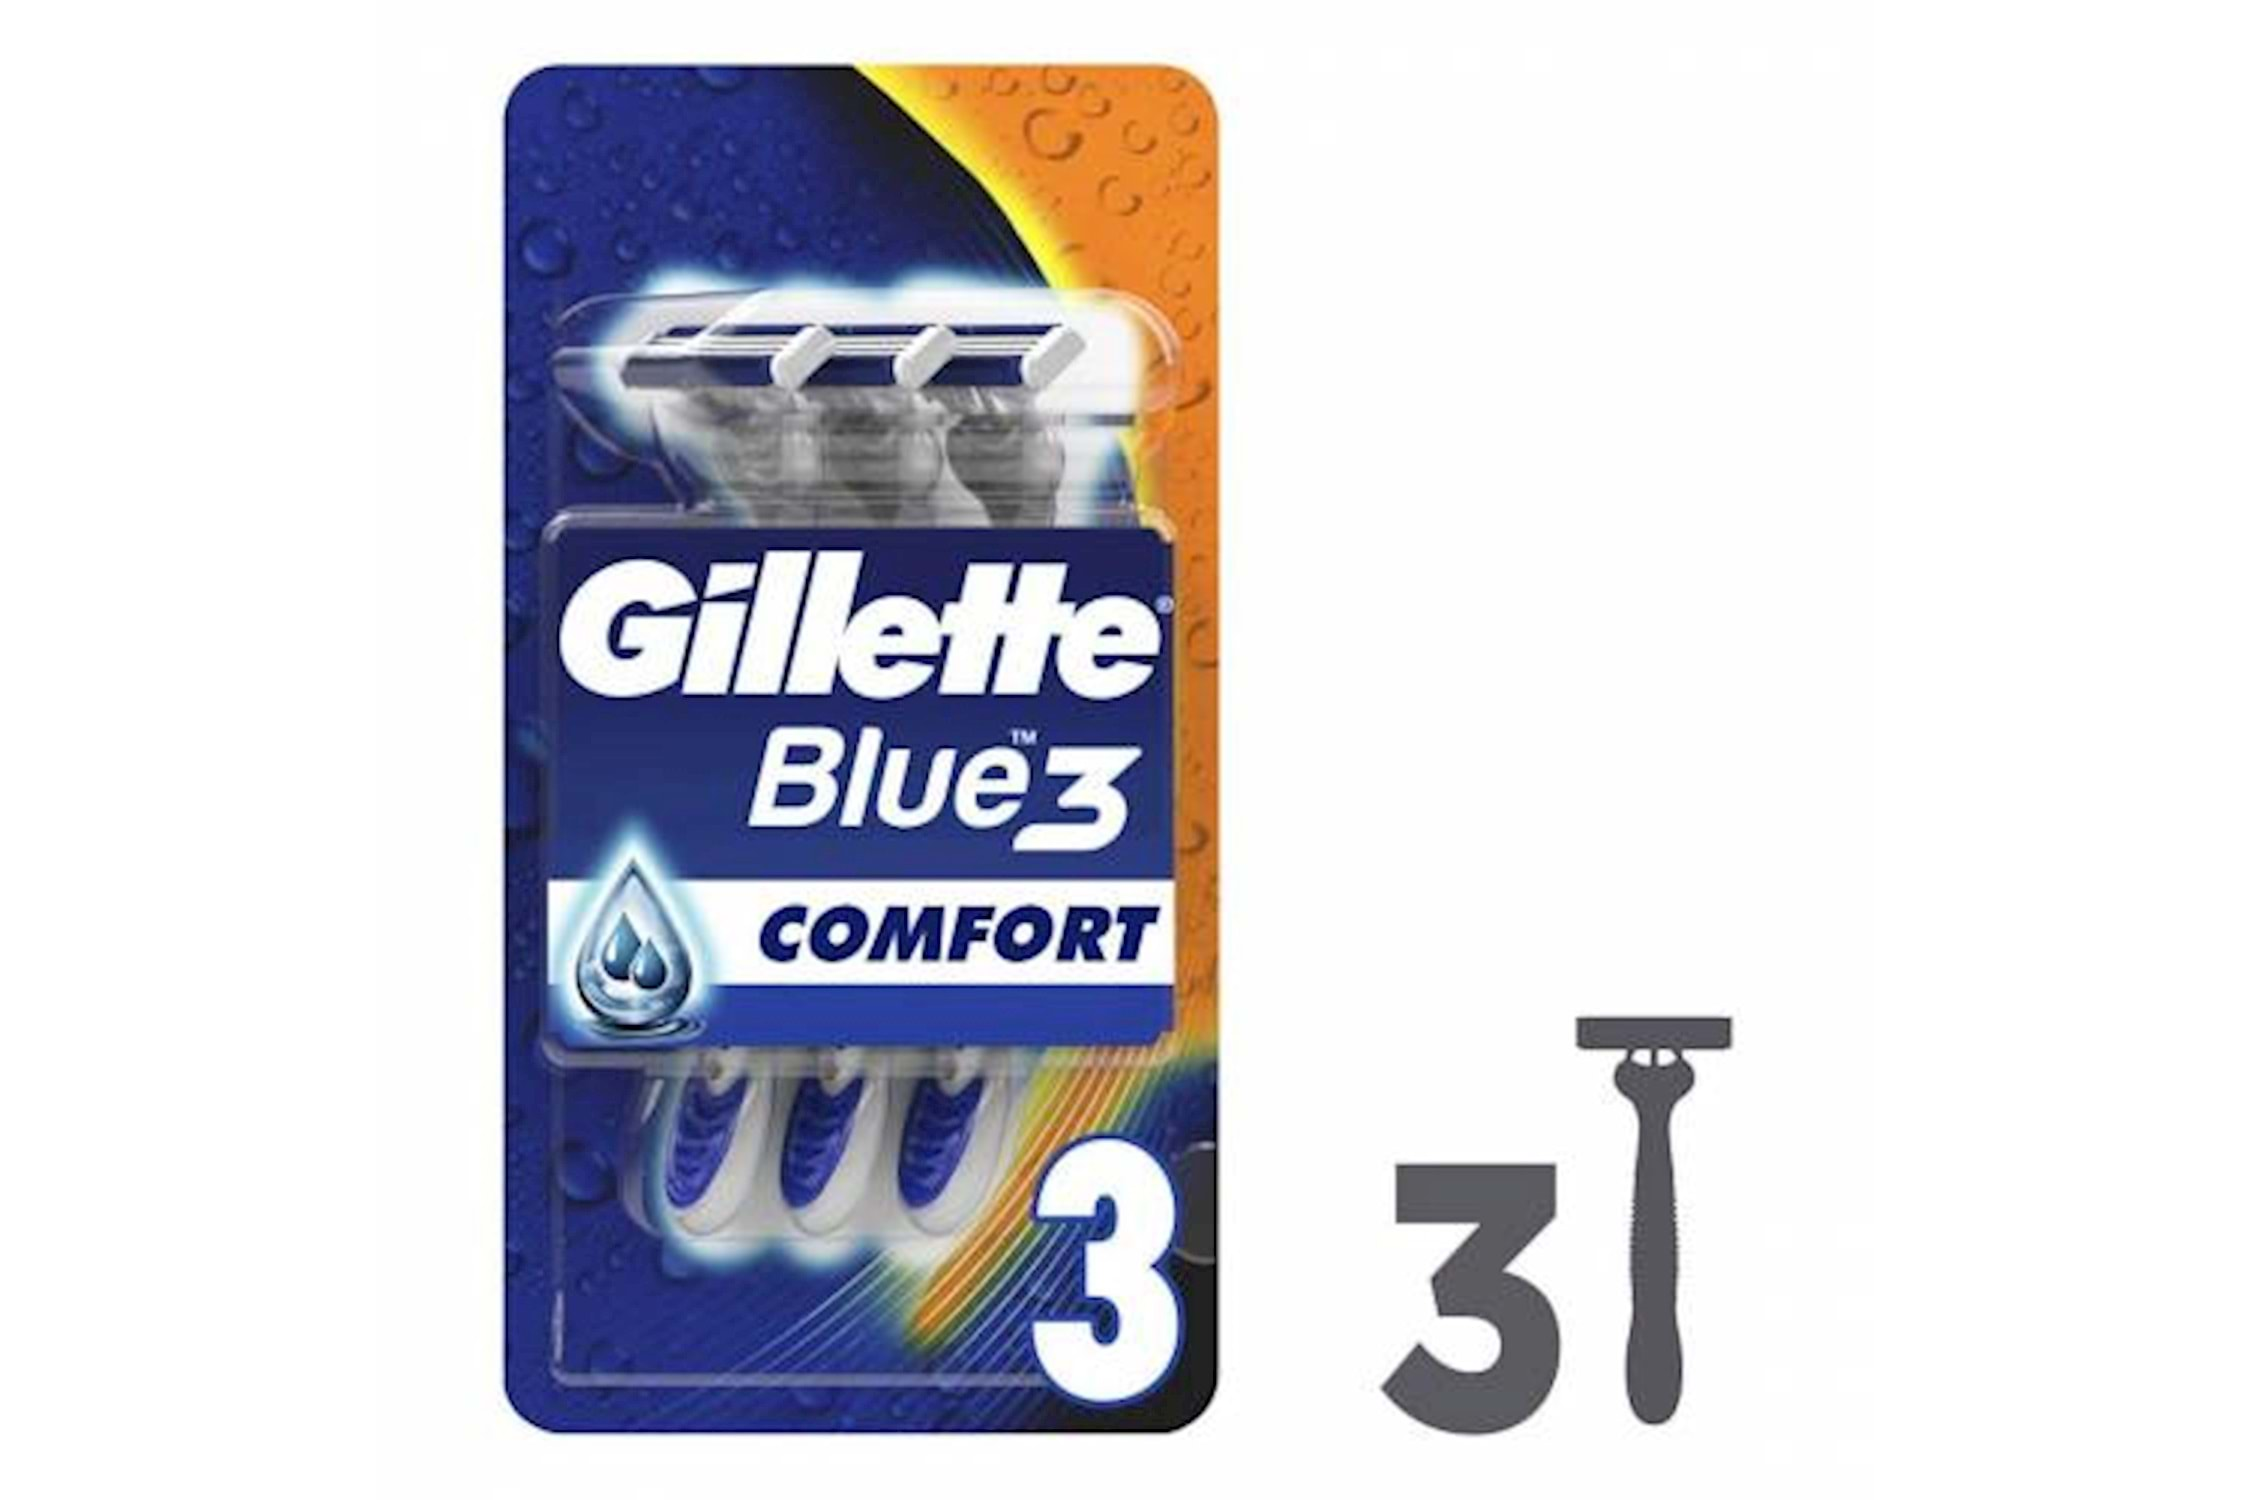 Wholesale Gillette Blue3 Disposable Shaving Razor with Comfort Gel - 3 Razors_2